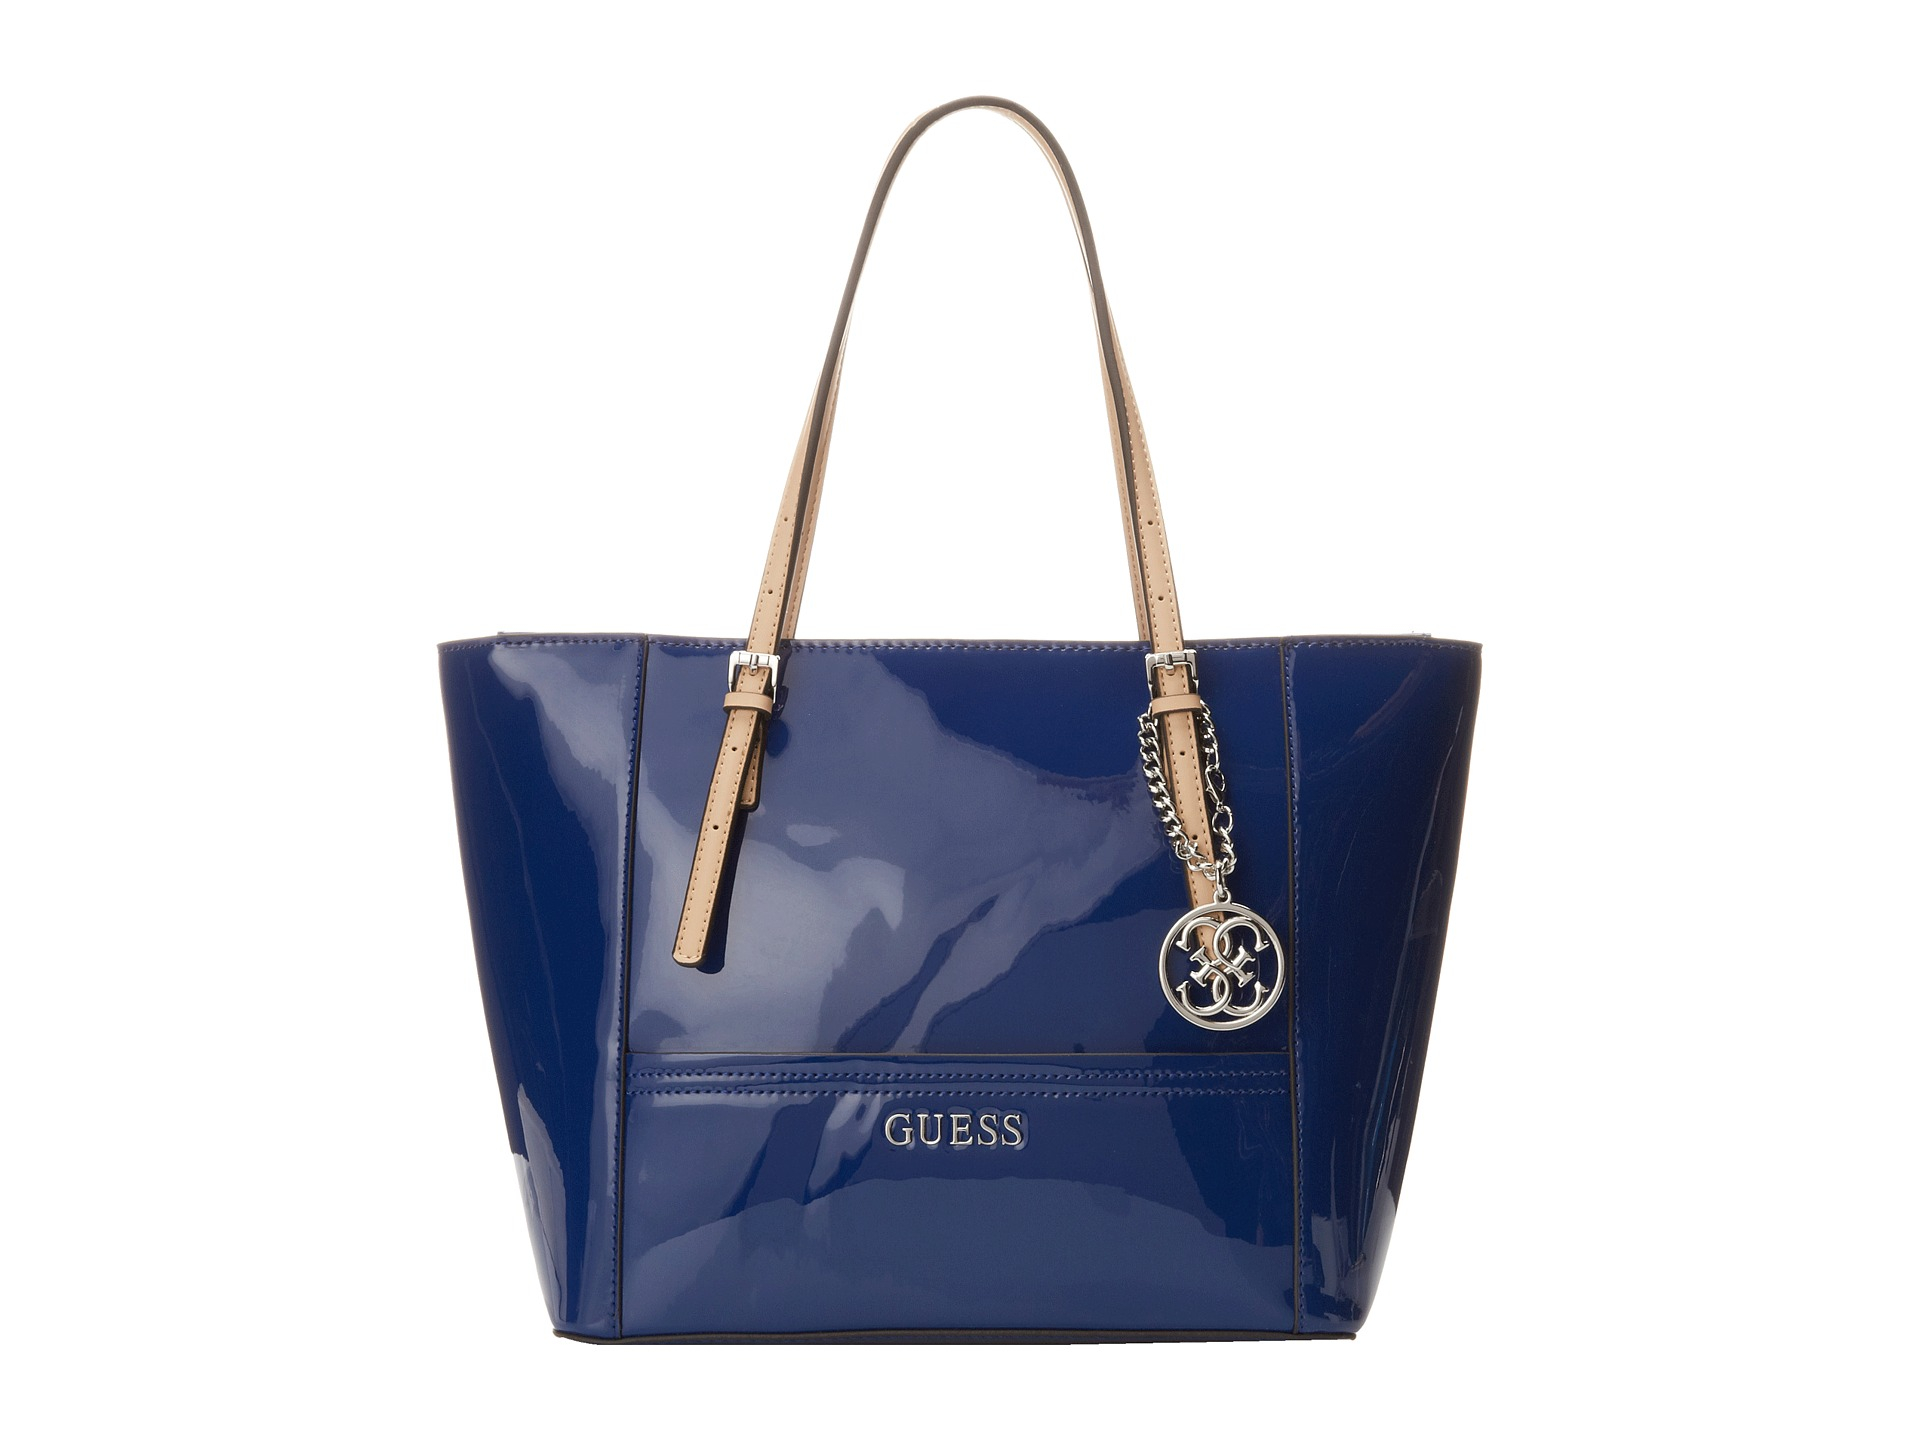 6c65dfd1d9 Lyst - Guess Delaney Small Classic Tote in Blue